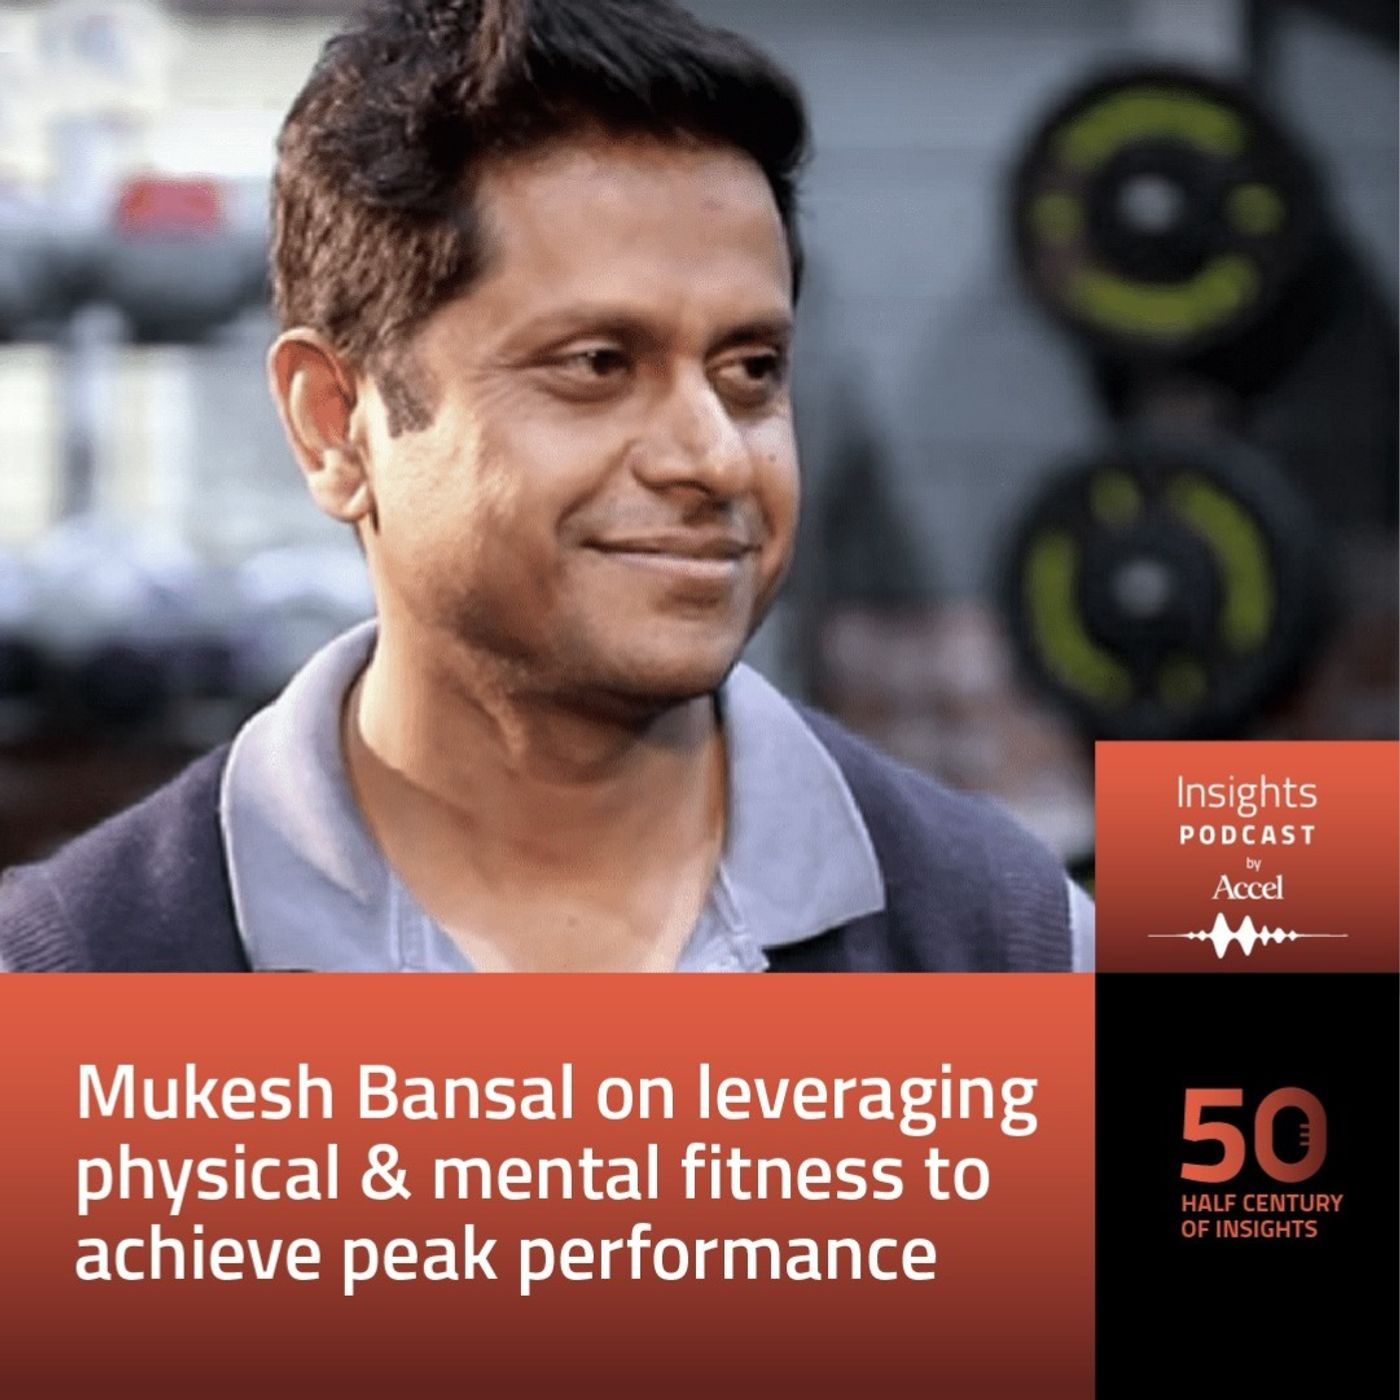 INSIGHTS #50 – Mukesh Bansal on leveraging physical & mental fitness to achieve peak performance